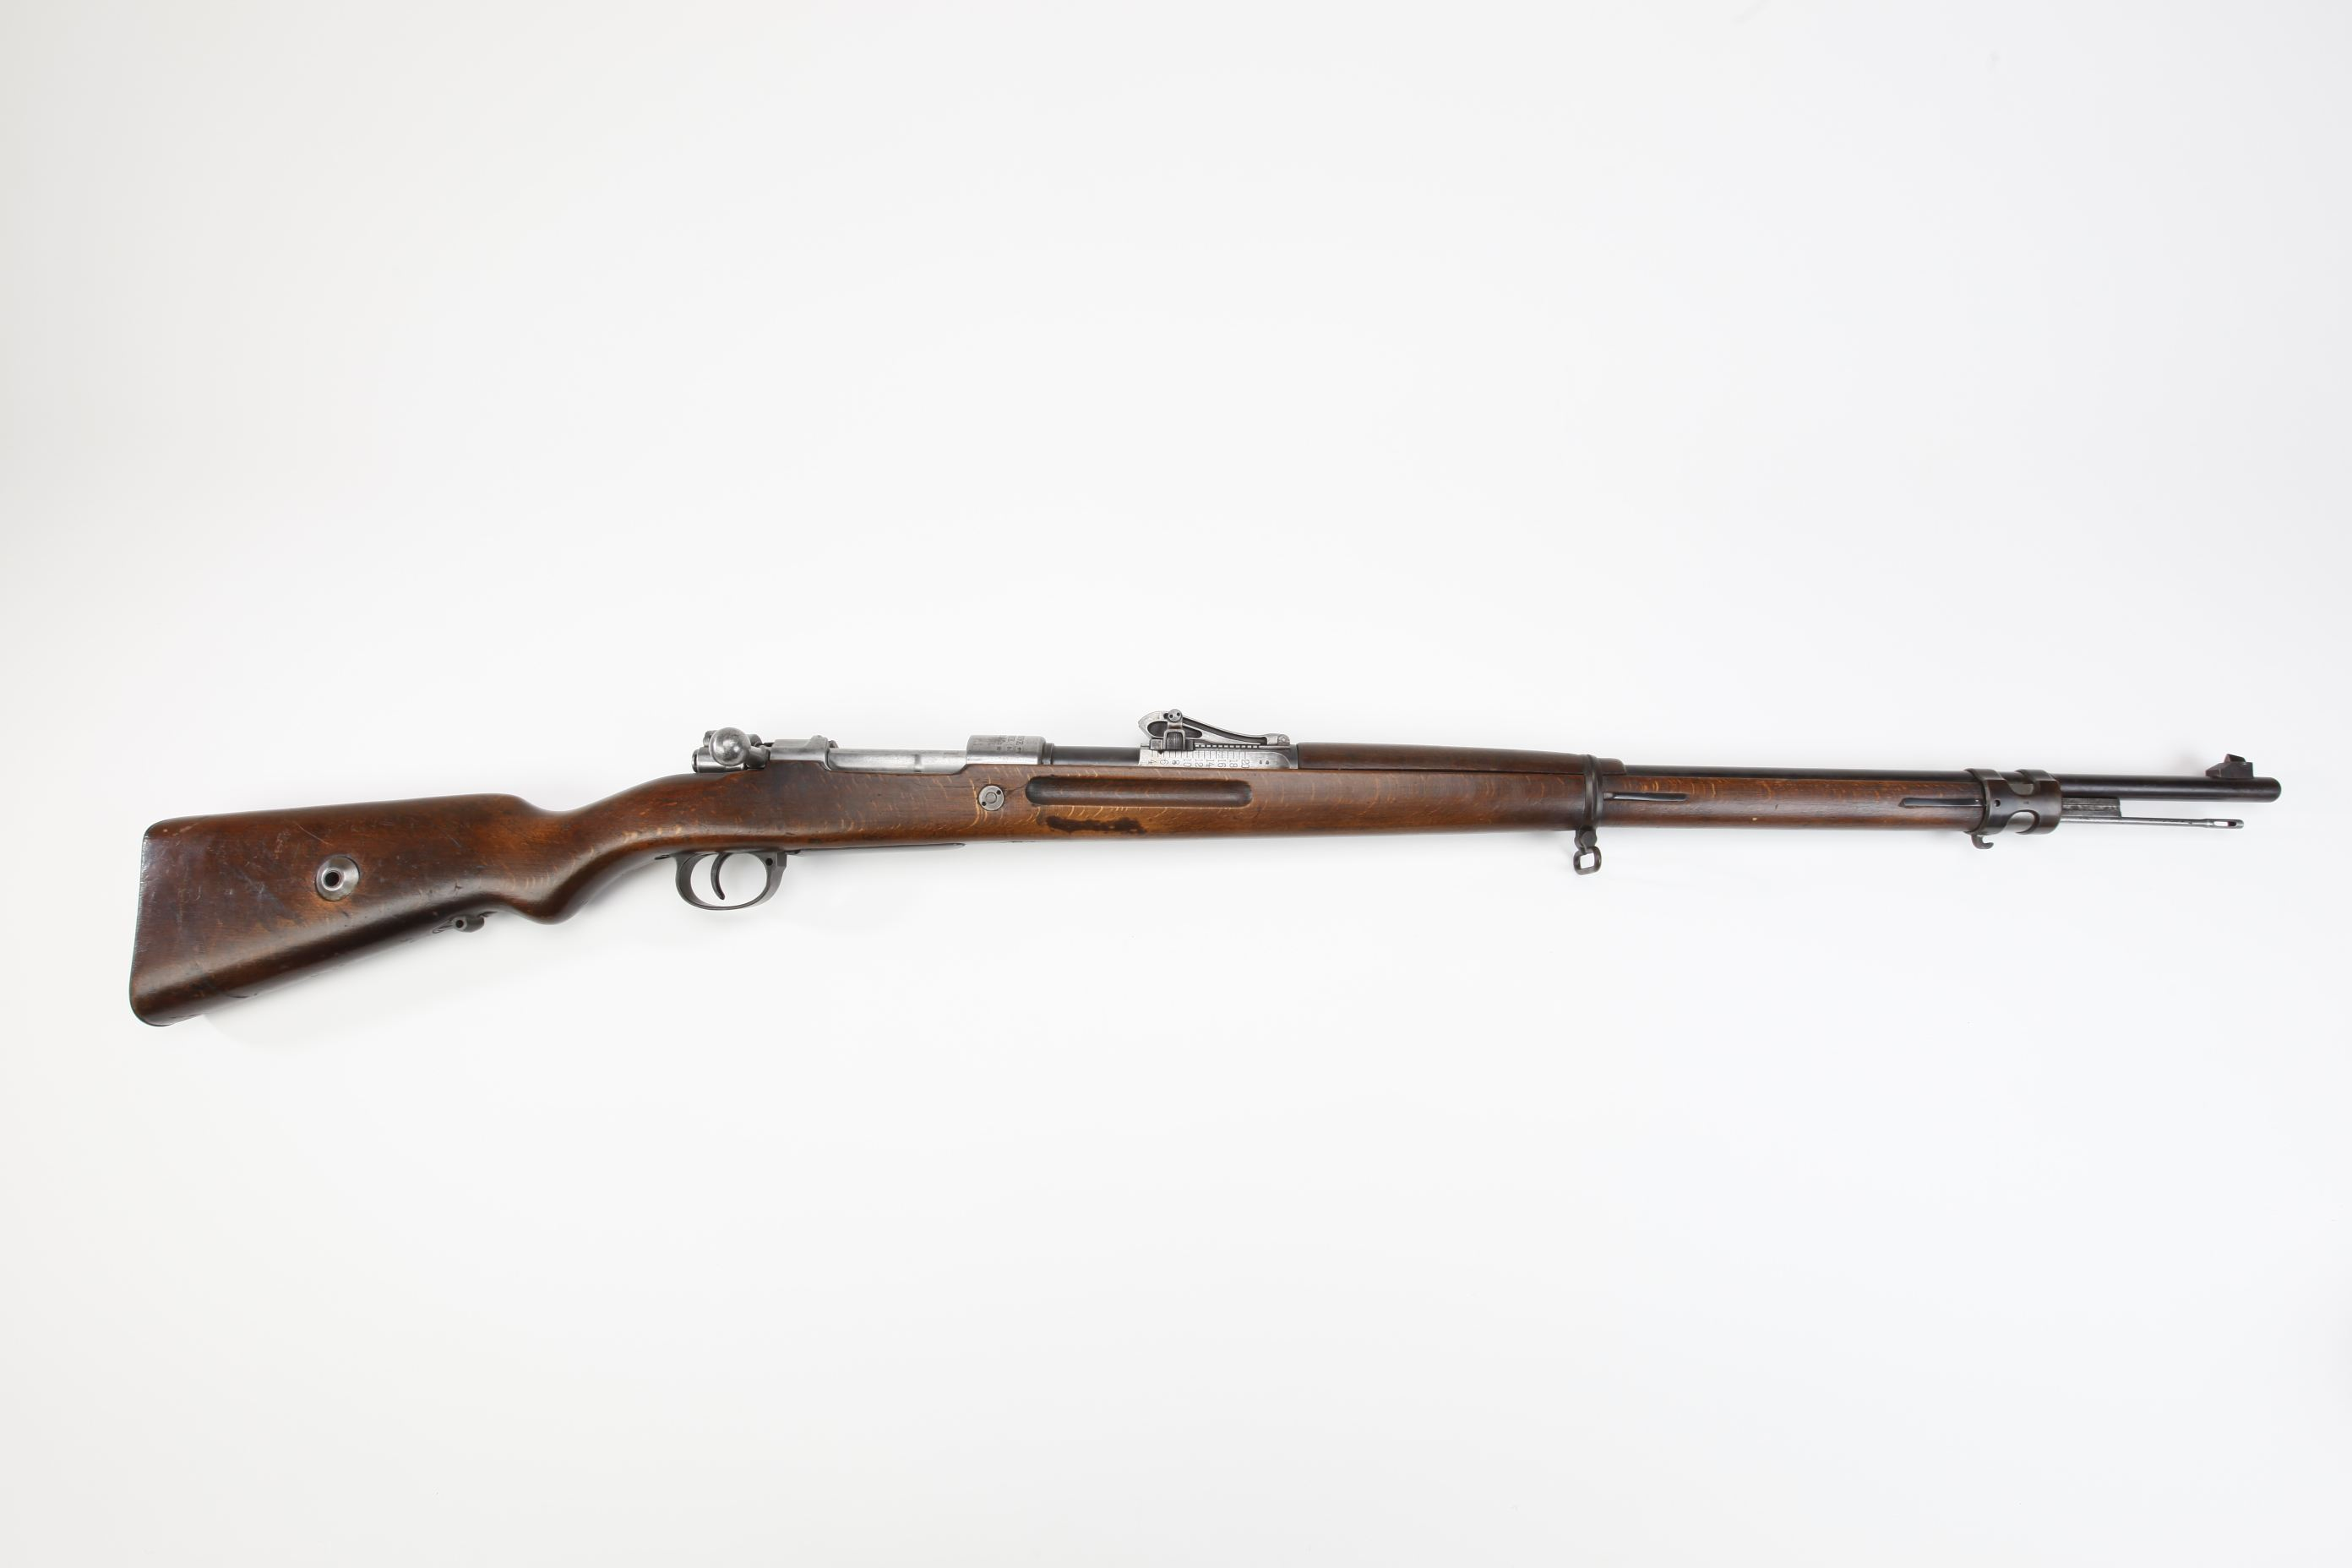 Waffenwerke Oberspree Kornbusch Gew 98 Bolt Action Rifle